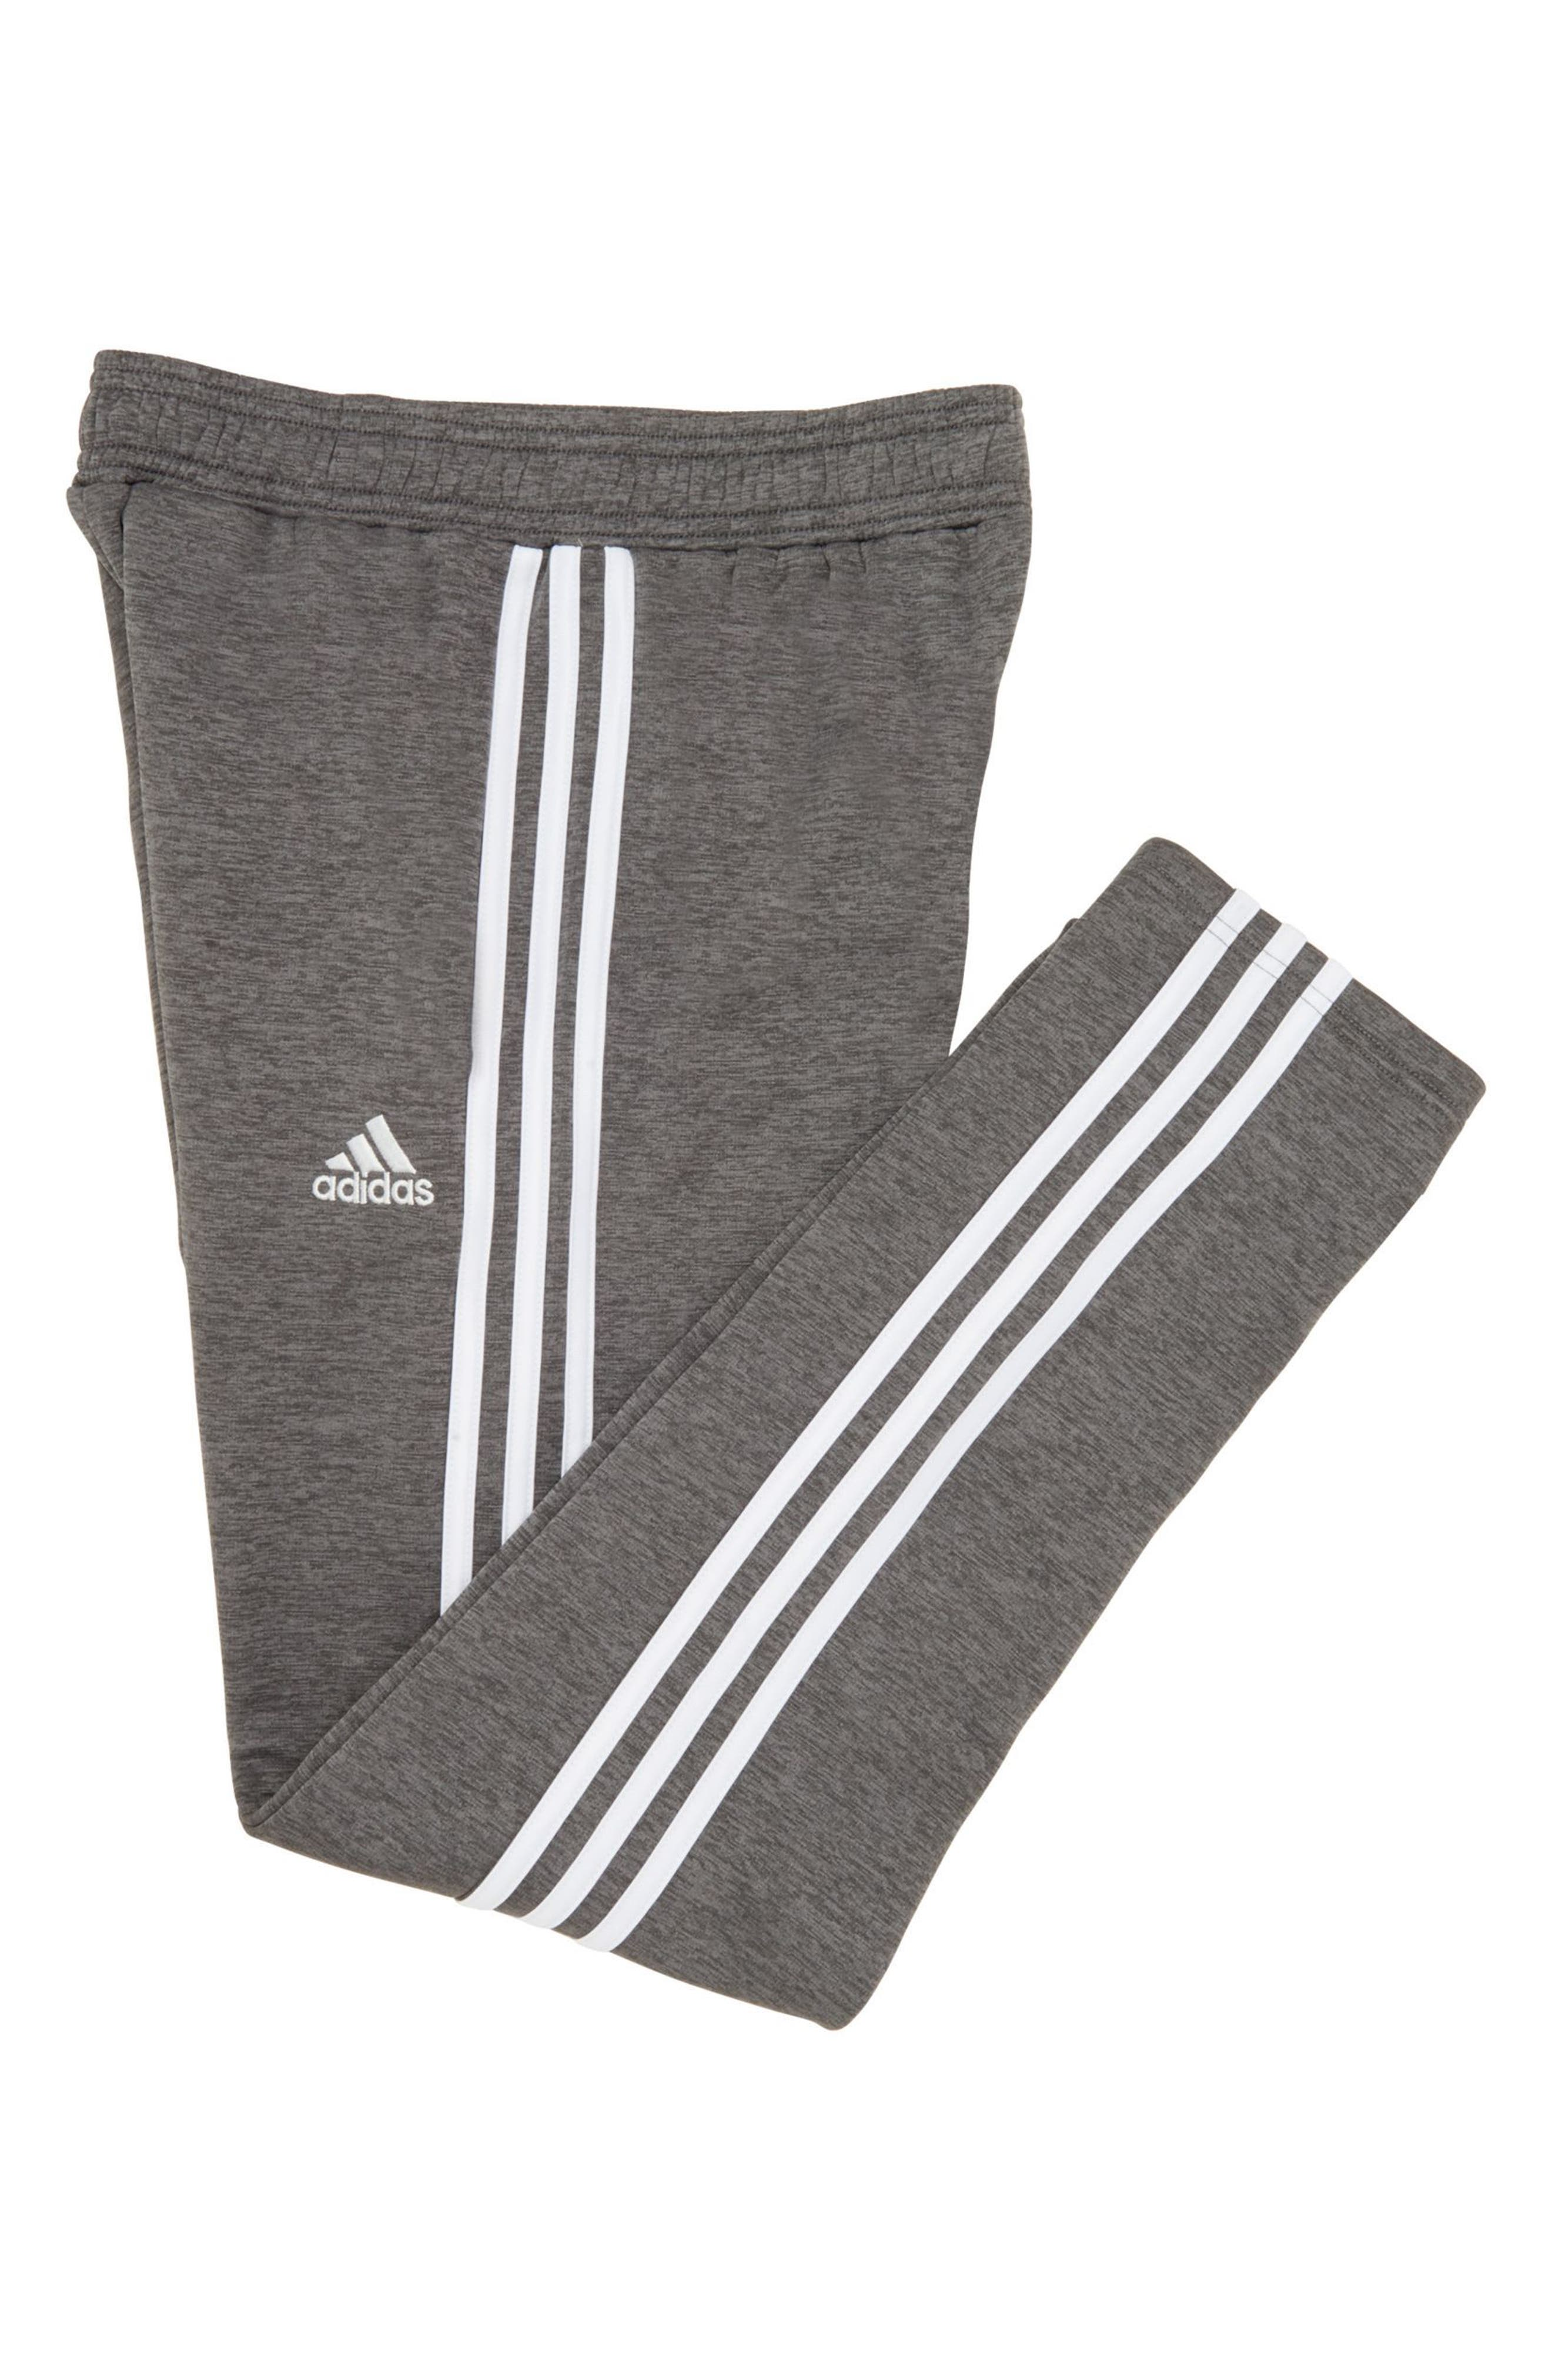 Iconic Future Pants,                             Alternate thumbnail 3, color,                             Dark Grey